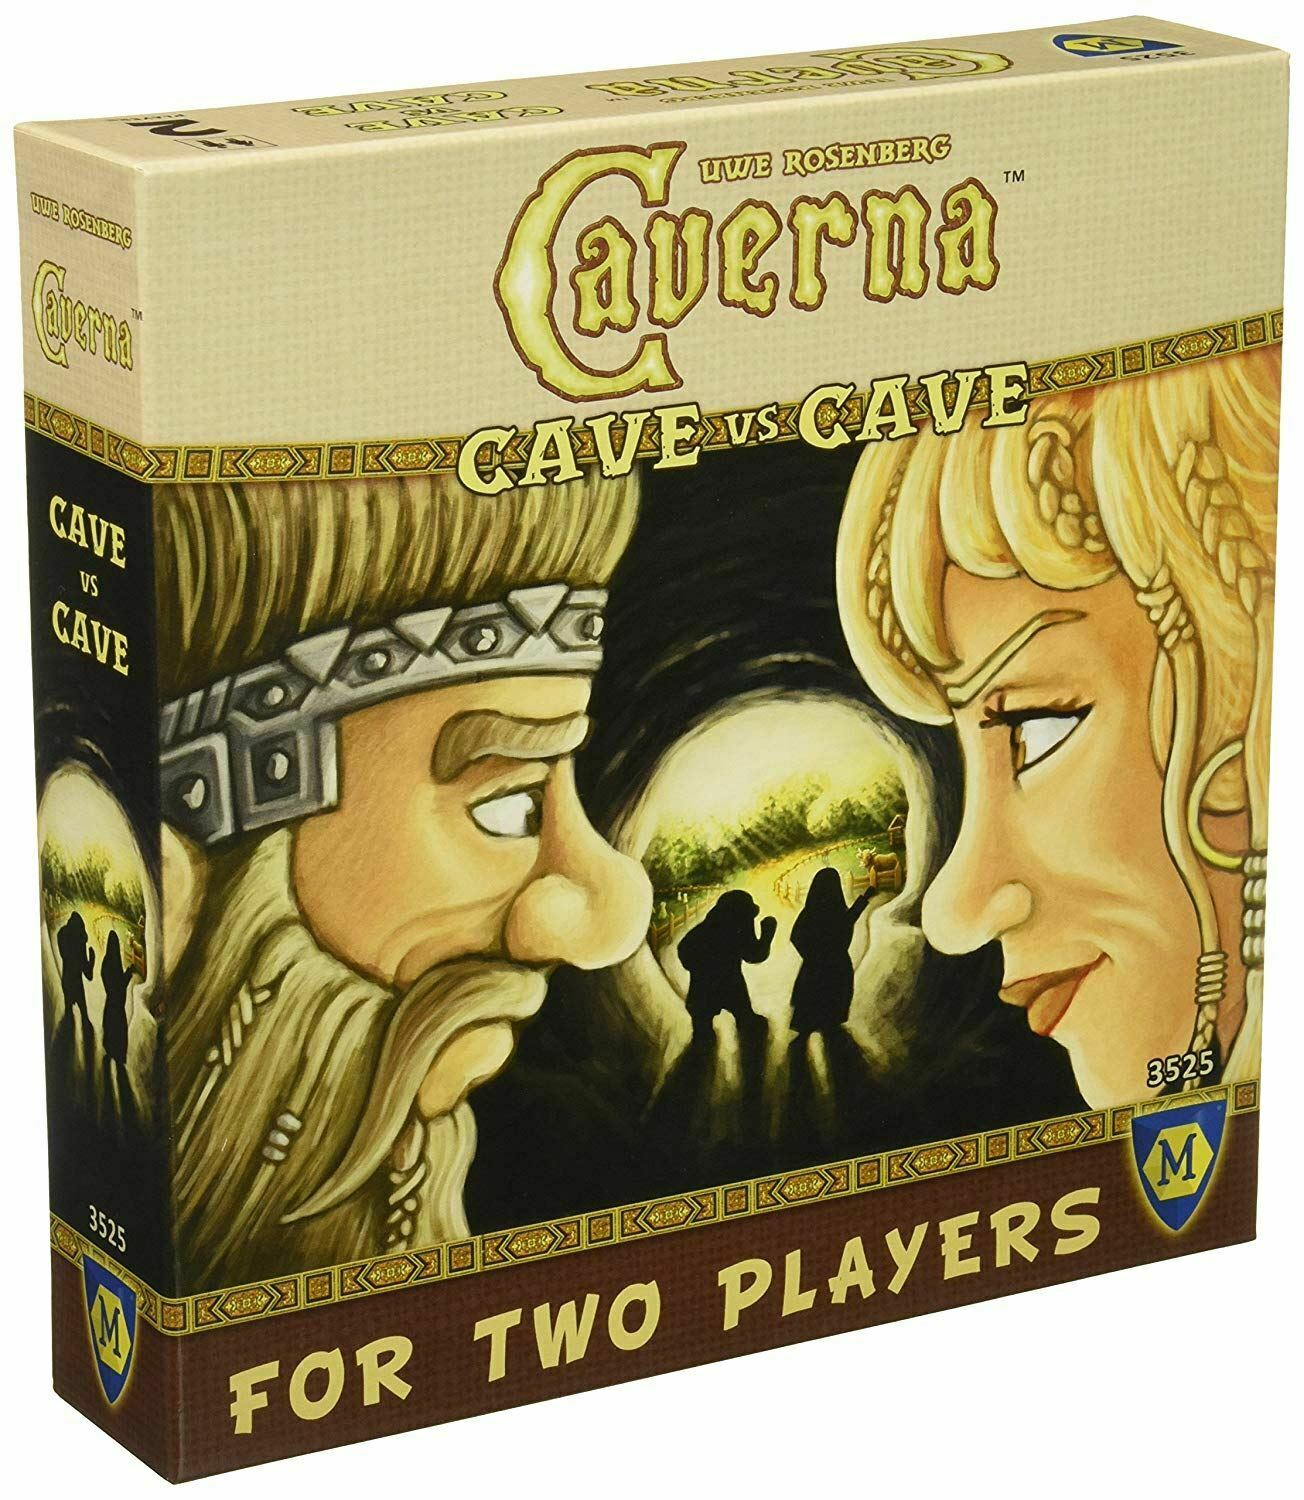 CAVERNA VS CAVE BOARD GAME